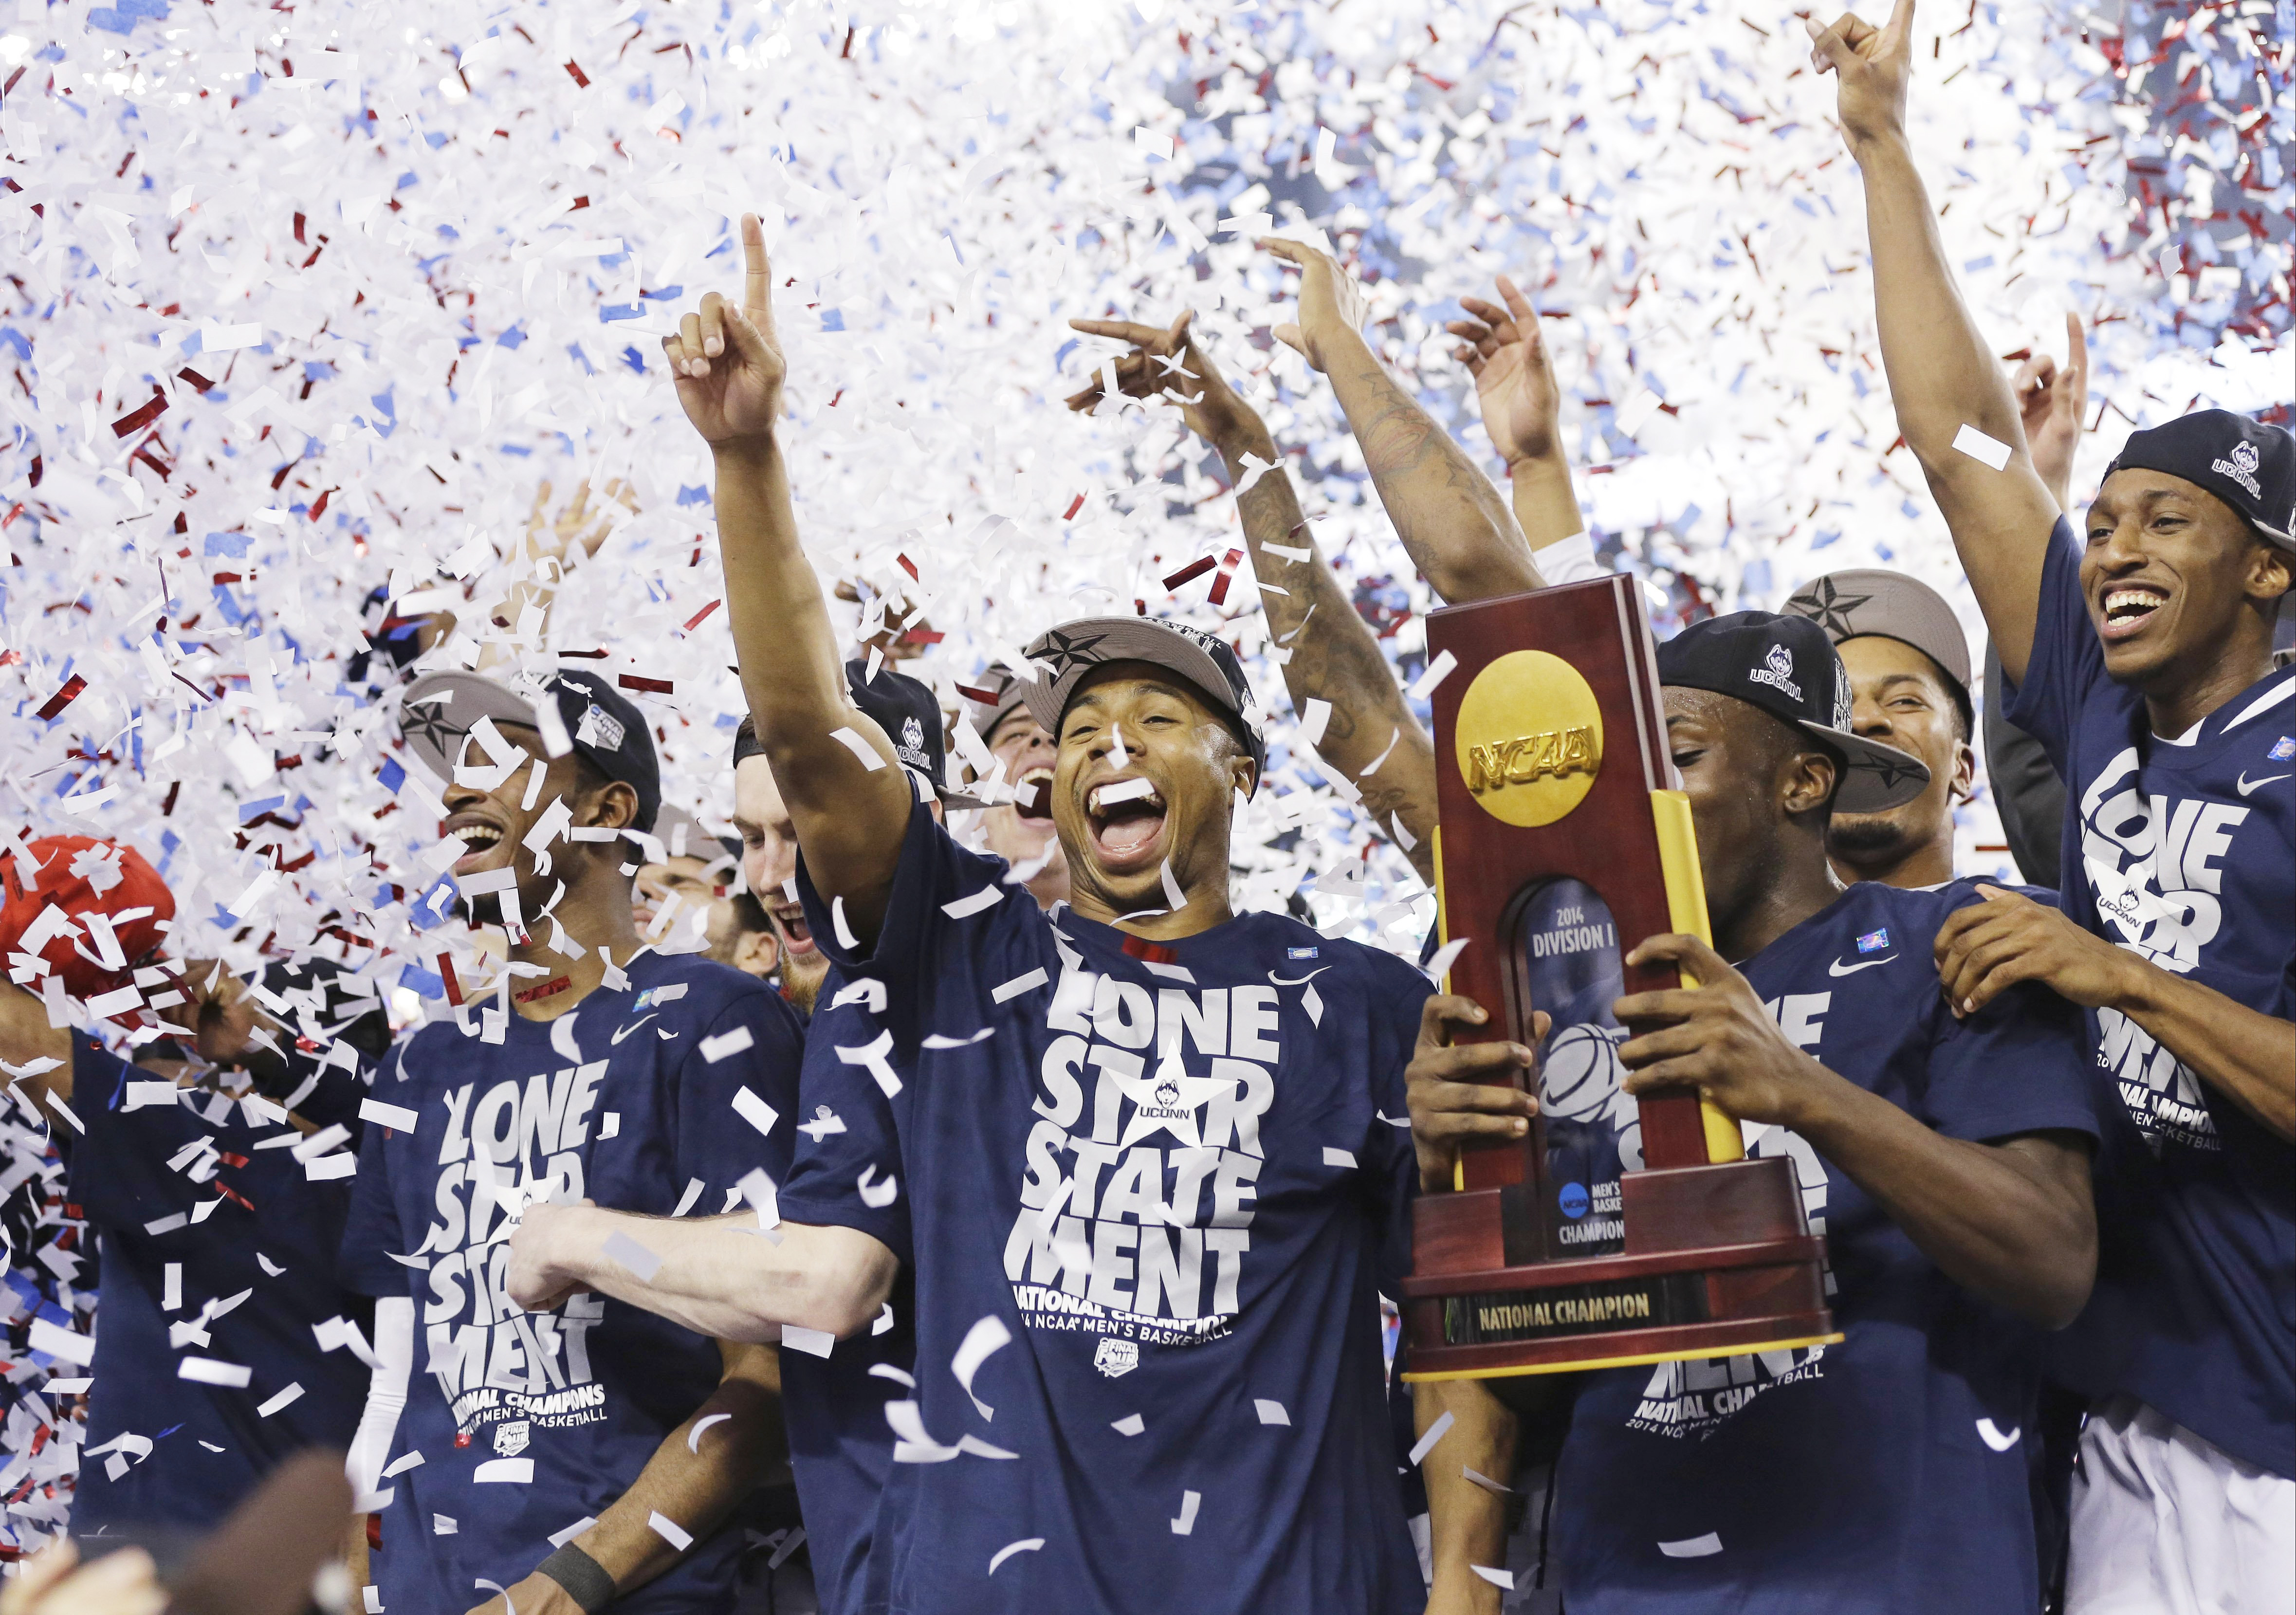 Connecticut celebrates with the championship trophy after beating Kentucky 60-54 at the NCAA Final Four tournament college basketball championship game on April 7, 2014, in Arlington, Texas.